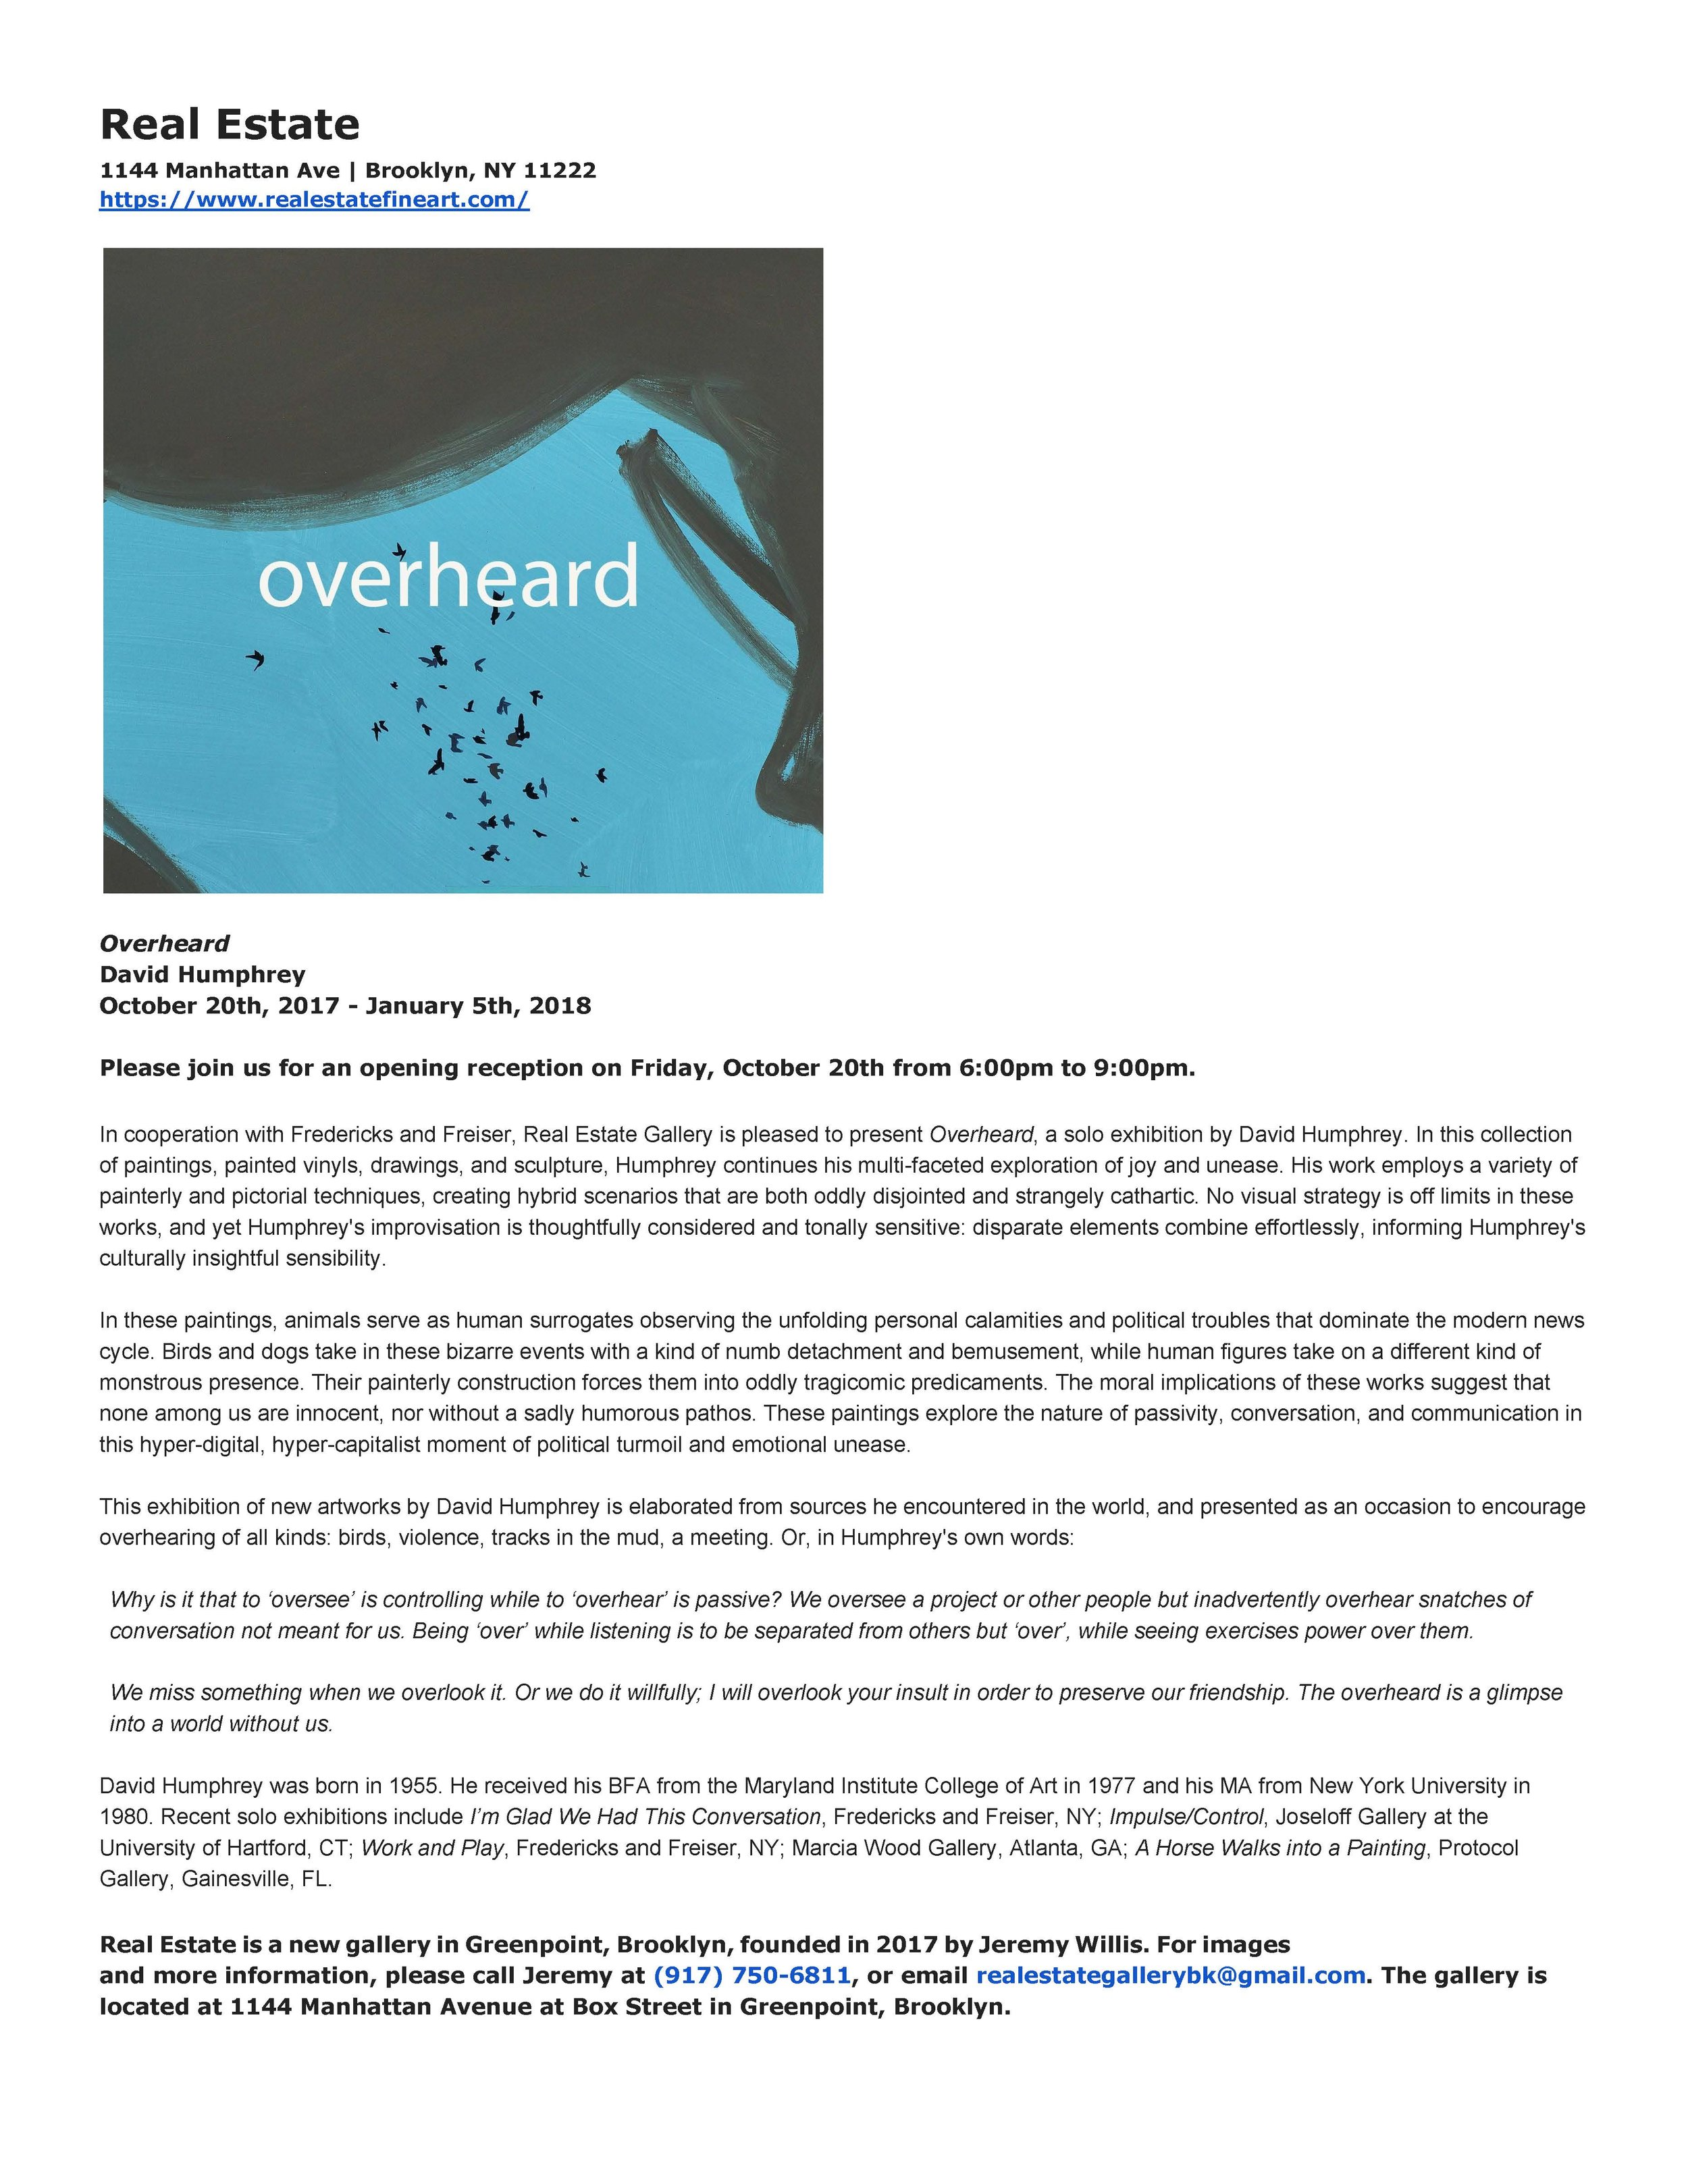 David Humphrey - Overheard - Press Release.jpg